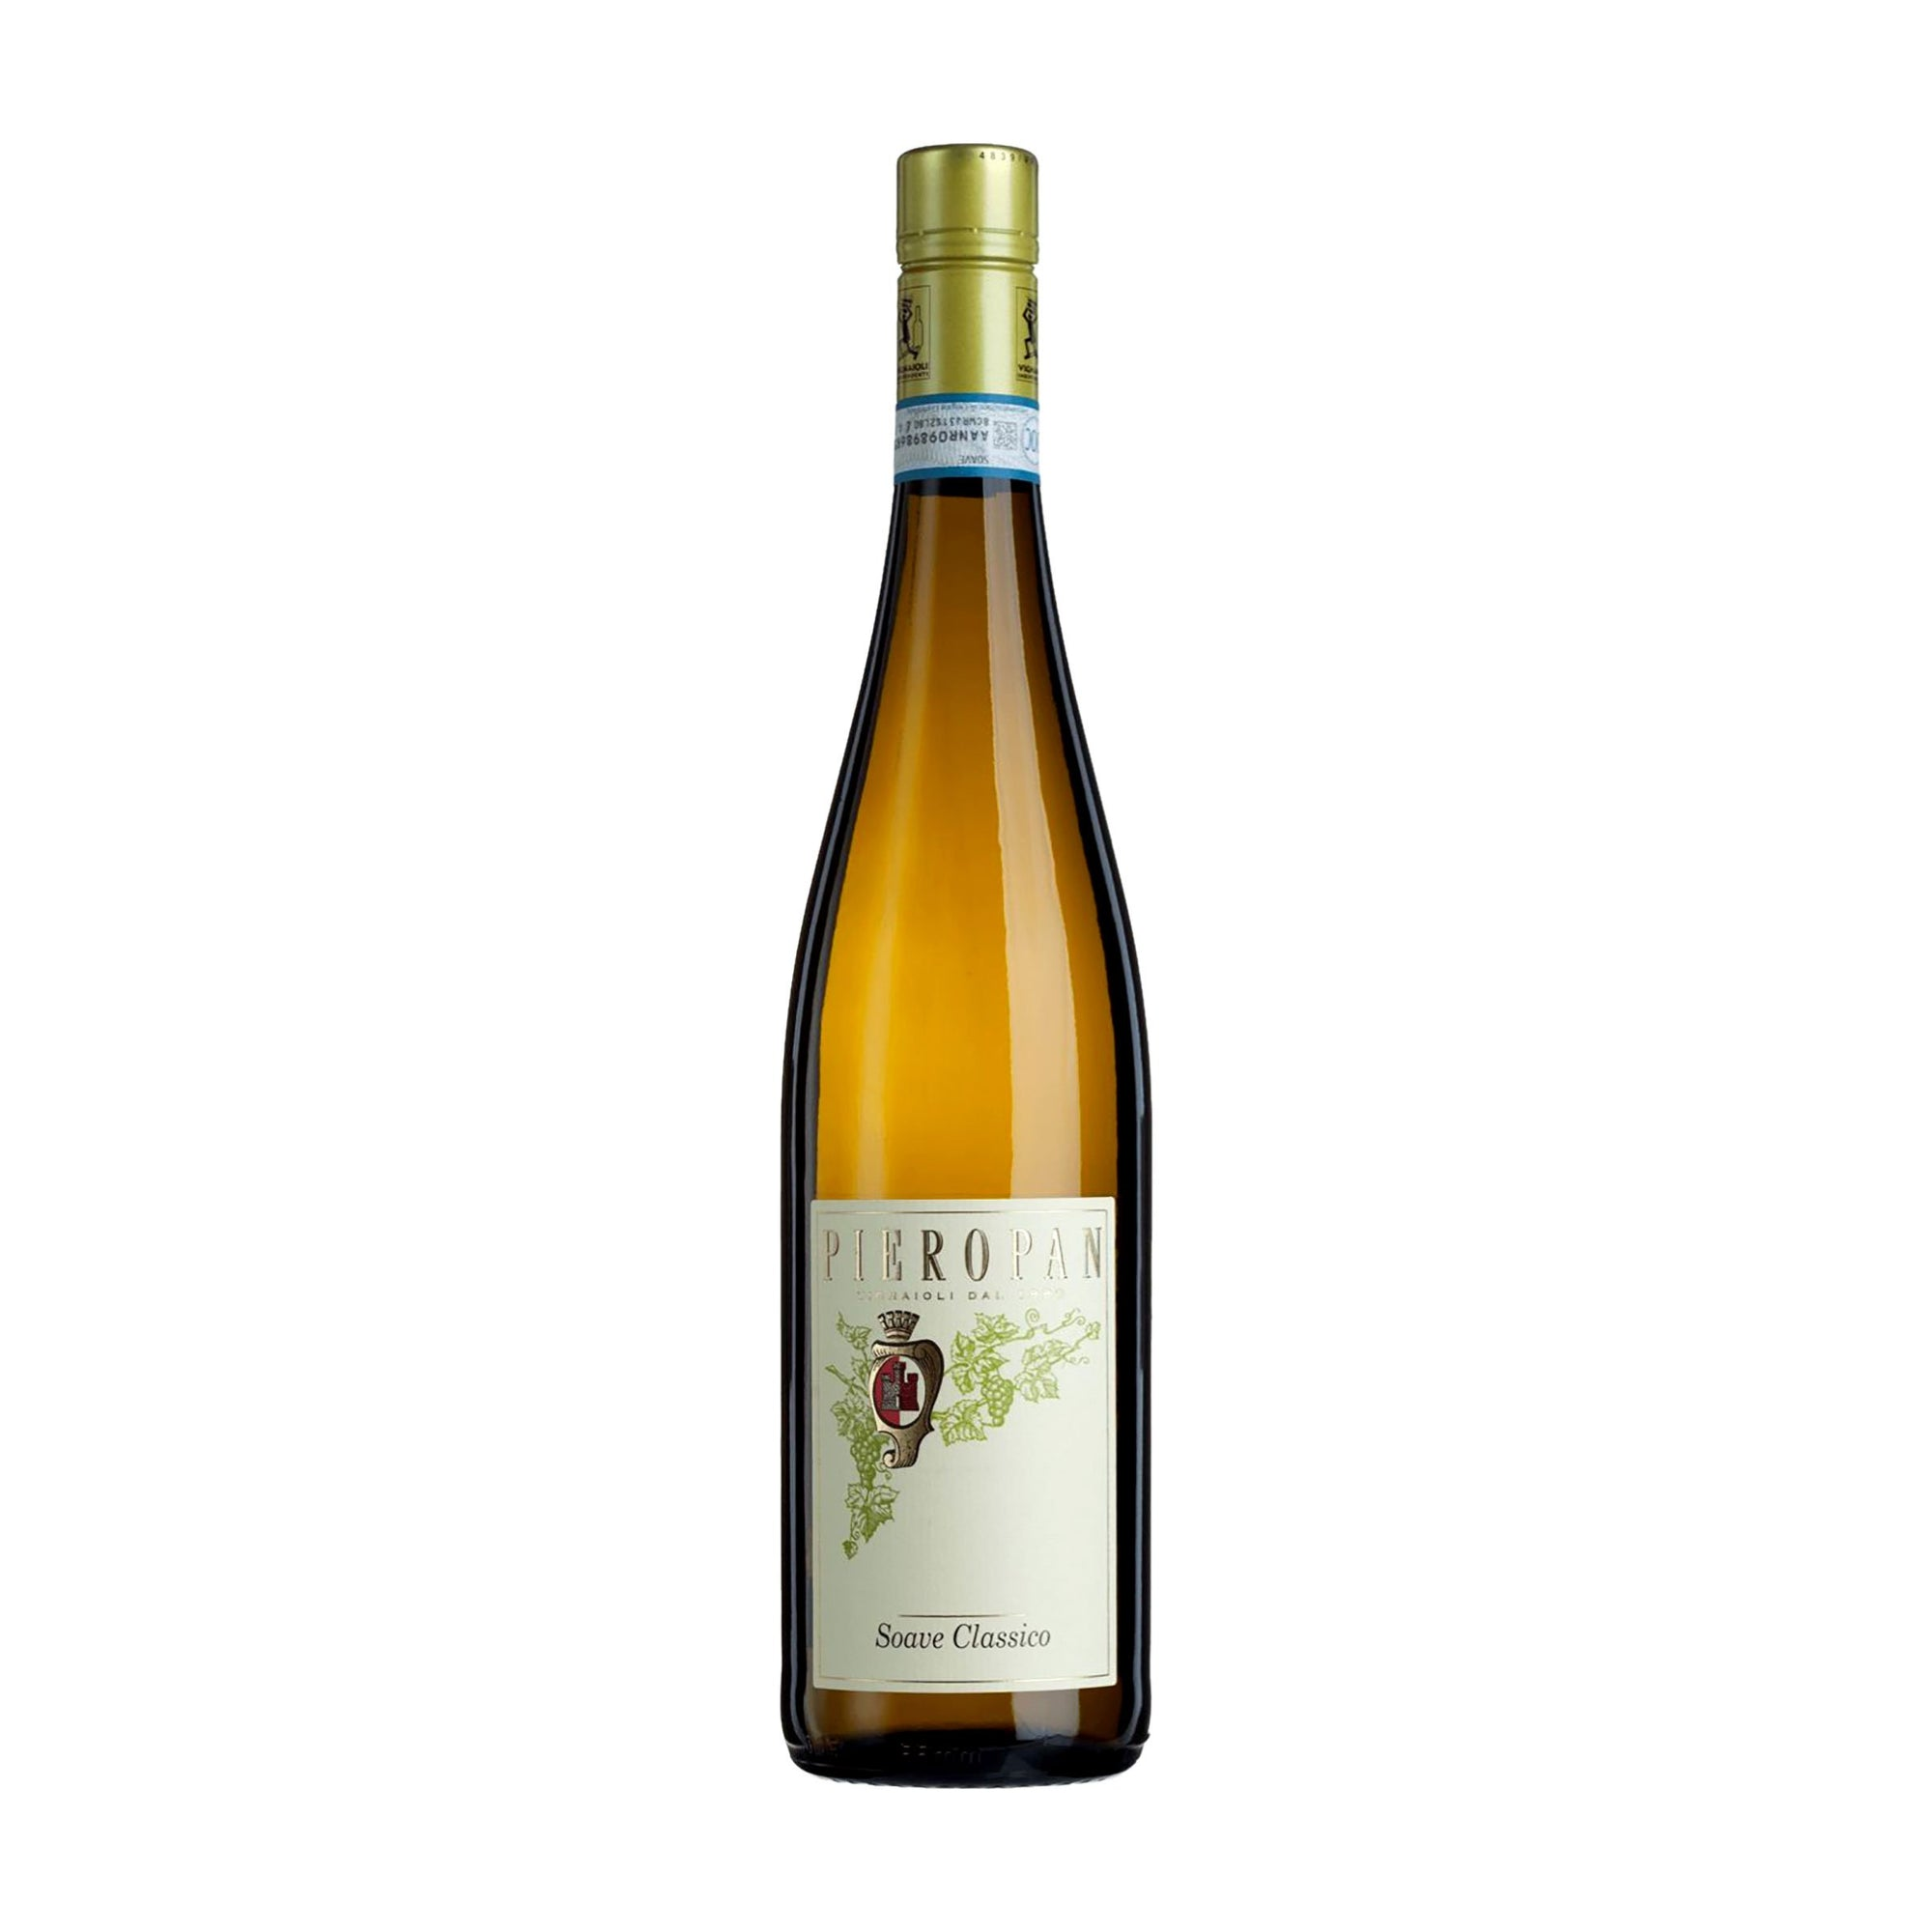 White Wine Pieropan Soave Classico 2018 (Half Bottle) (4387488268311)